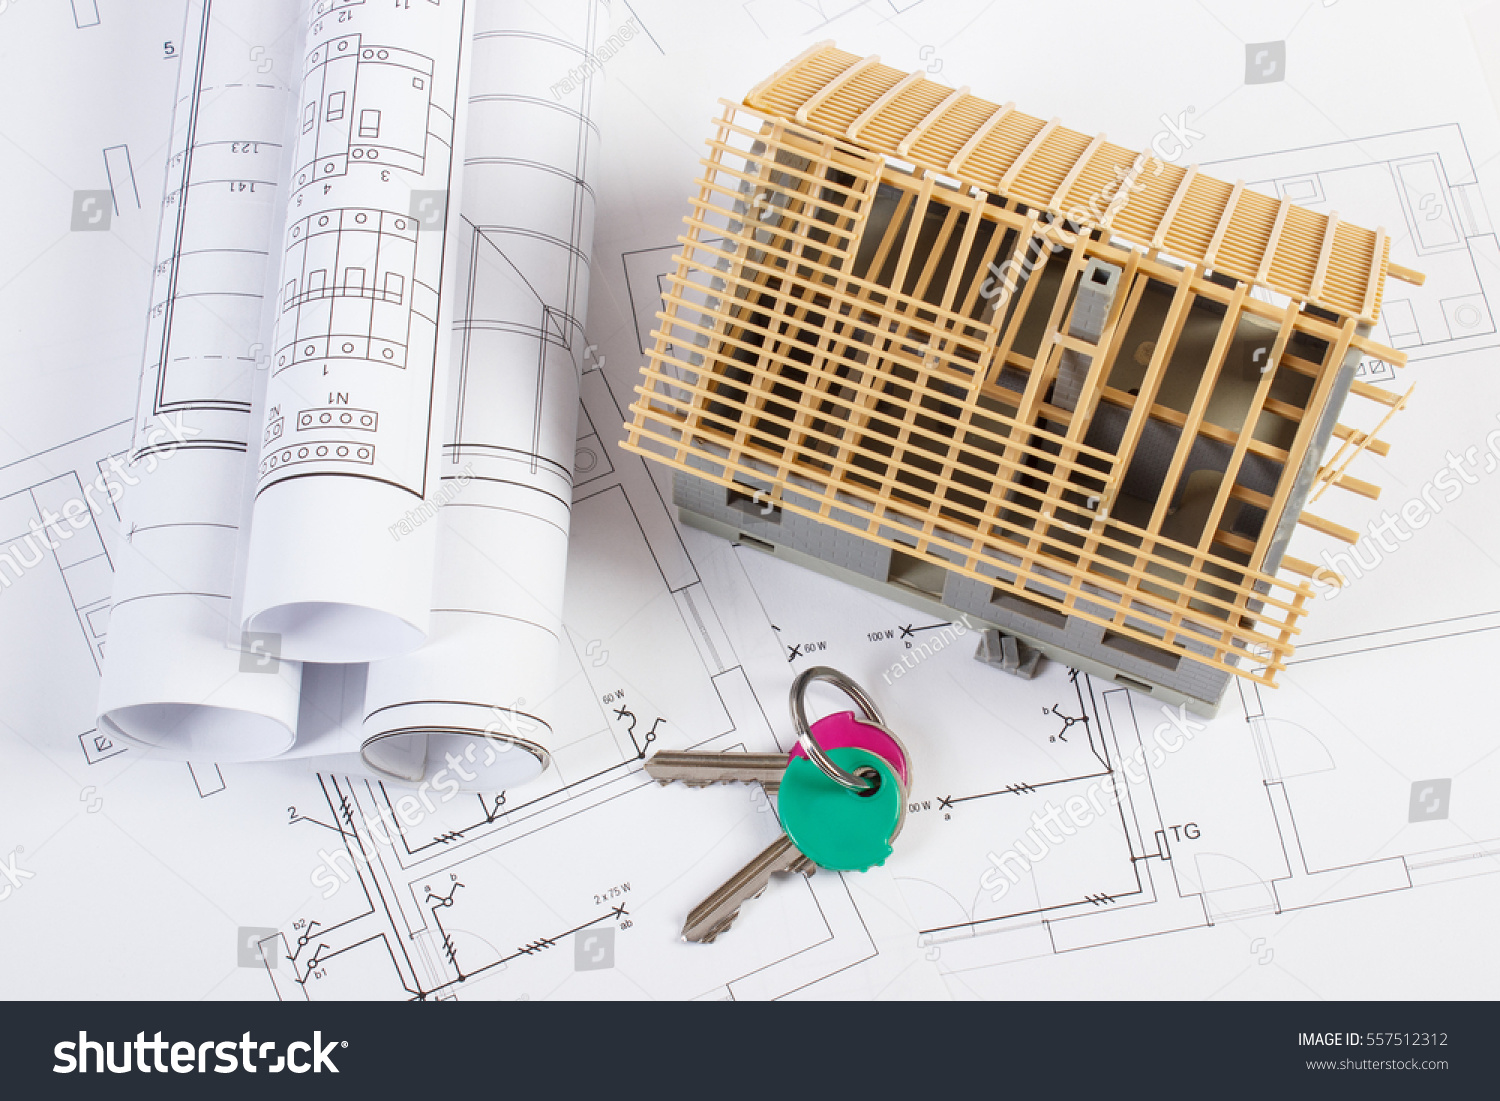 Home Keys Small House Under Construction Stock Photo Edit Now Electrical Diagram L N And Rolls Of Diagrams On Drawings For Project